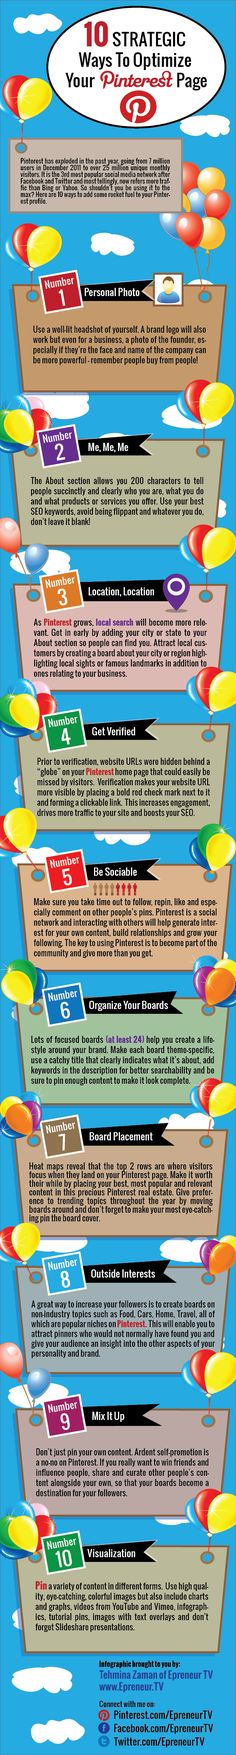 10 Strategic Ways to Optimize Your #Pinterest Page – #Infographic